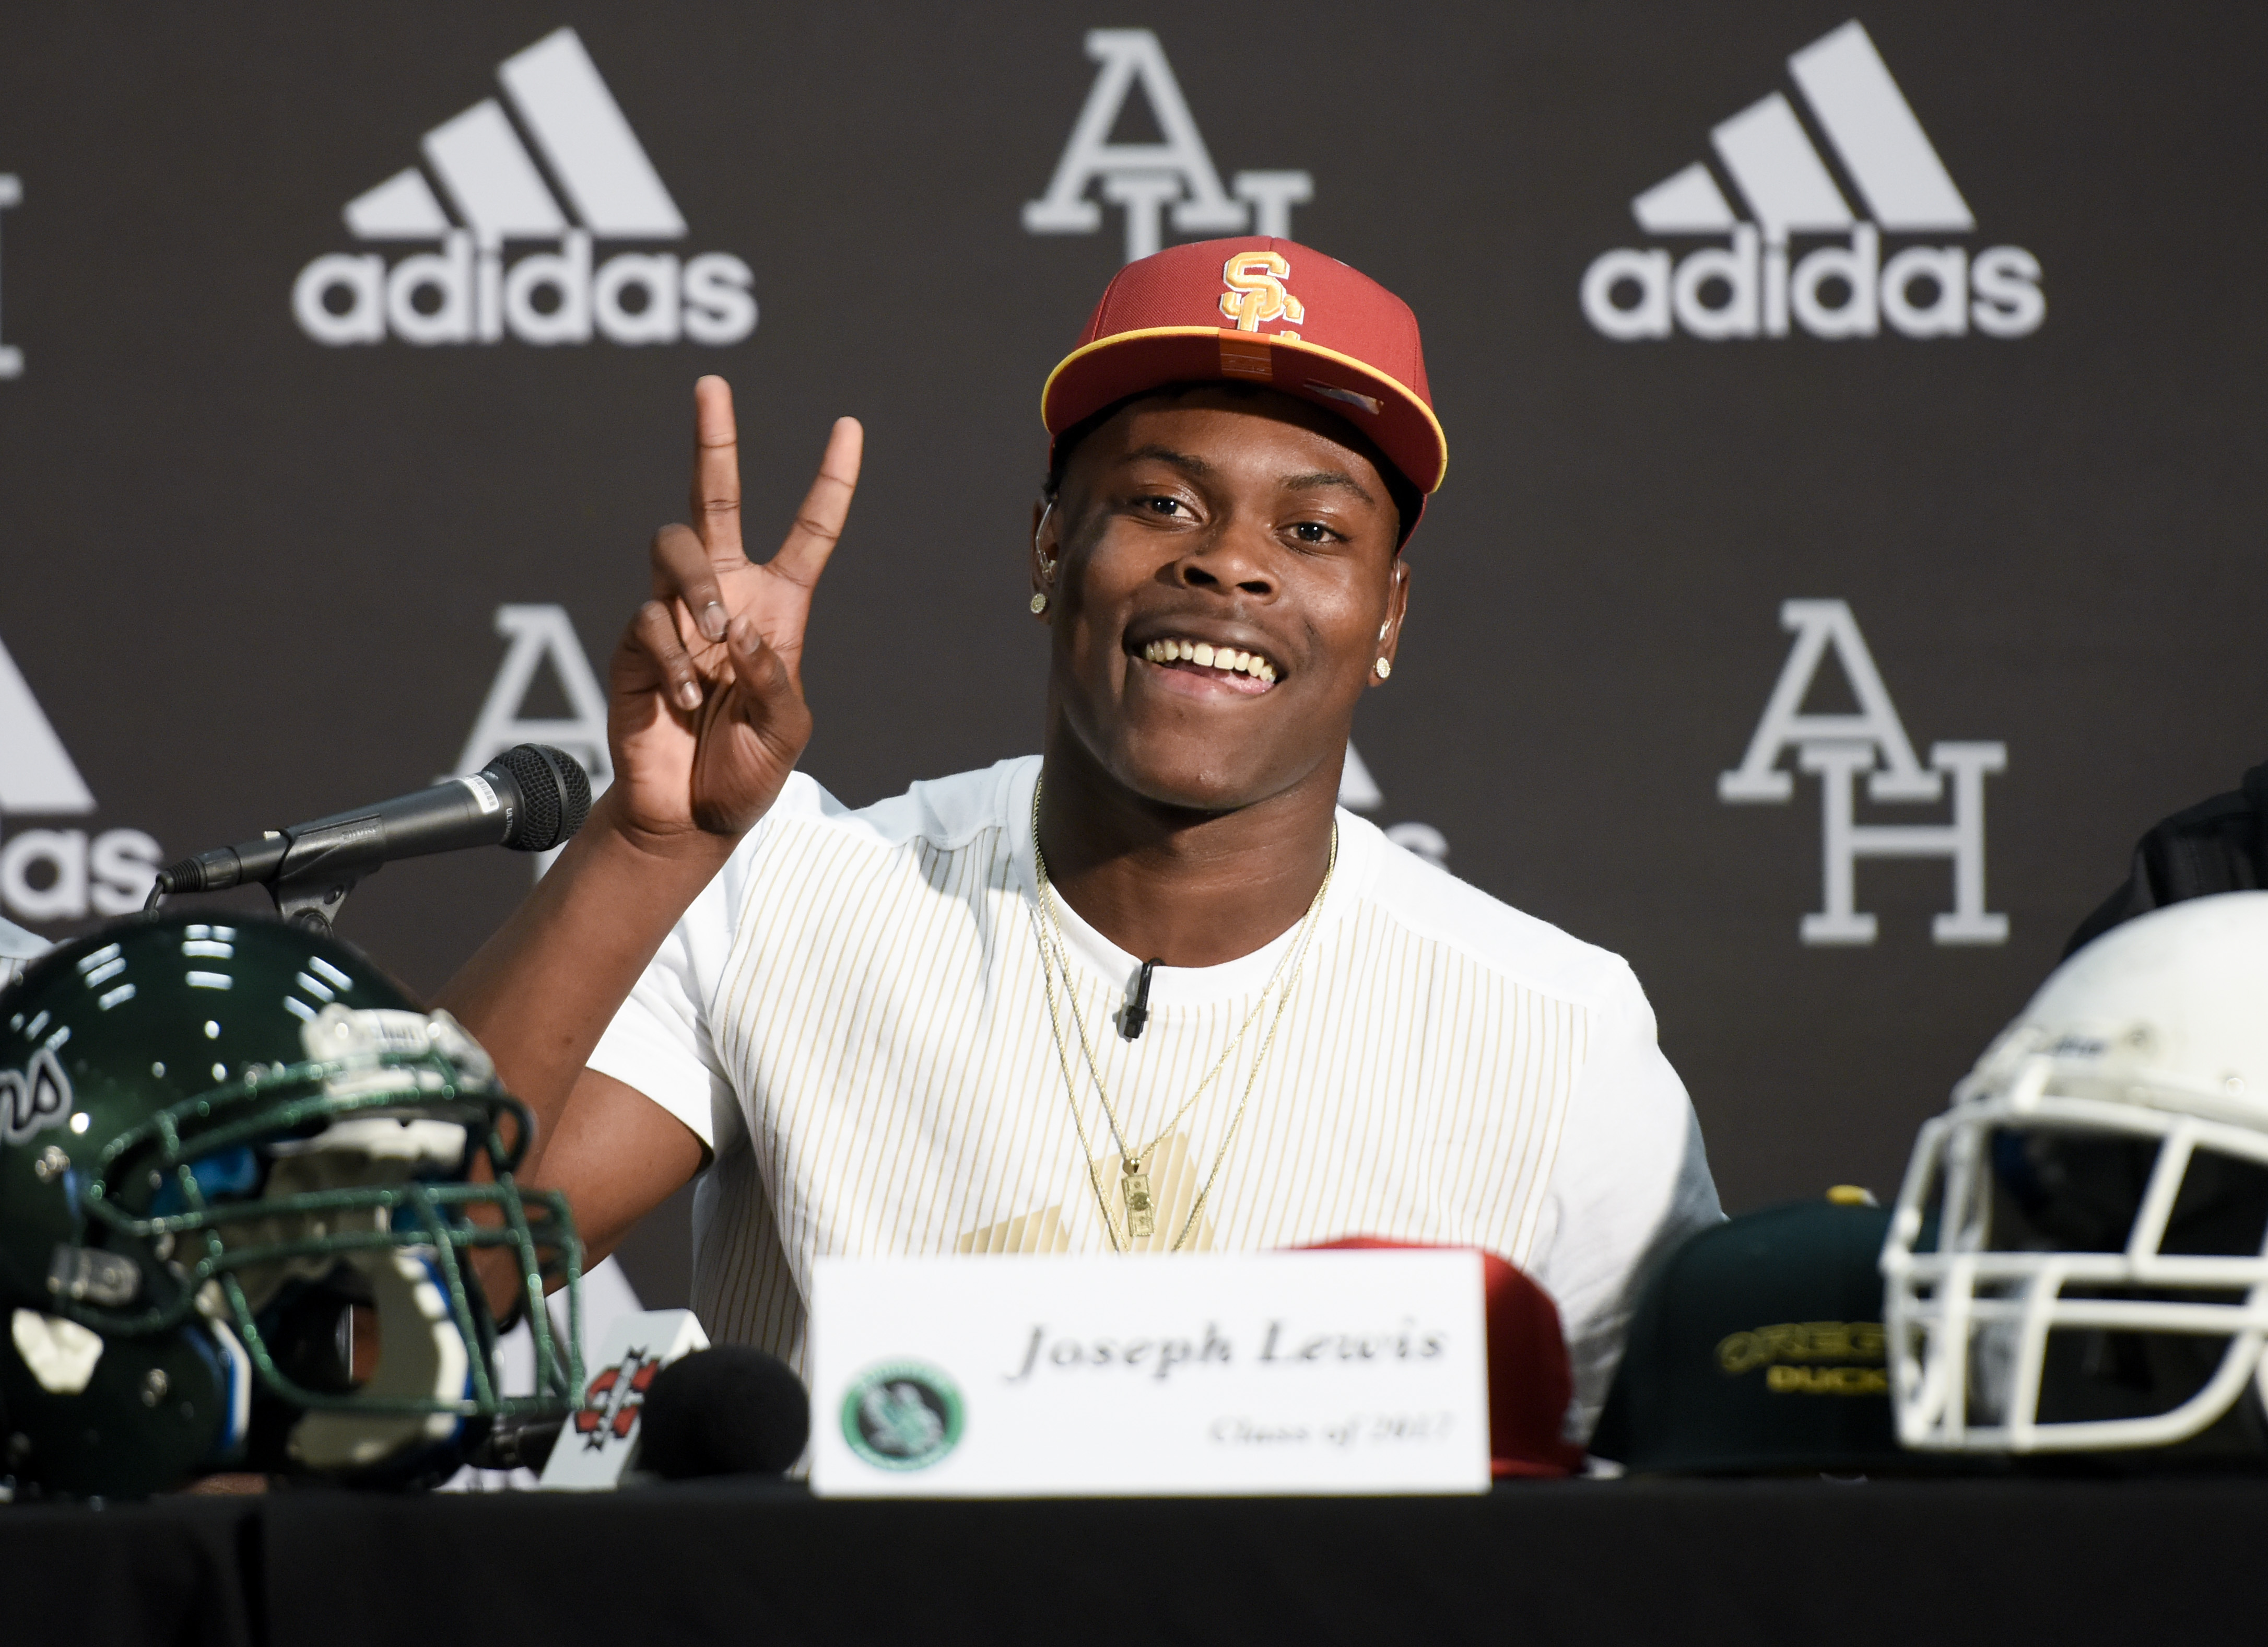 9852258-high-school-football-national-signing-day-joseph-lewis